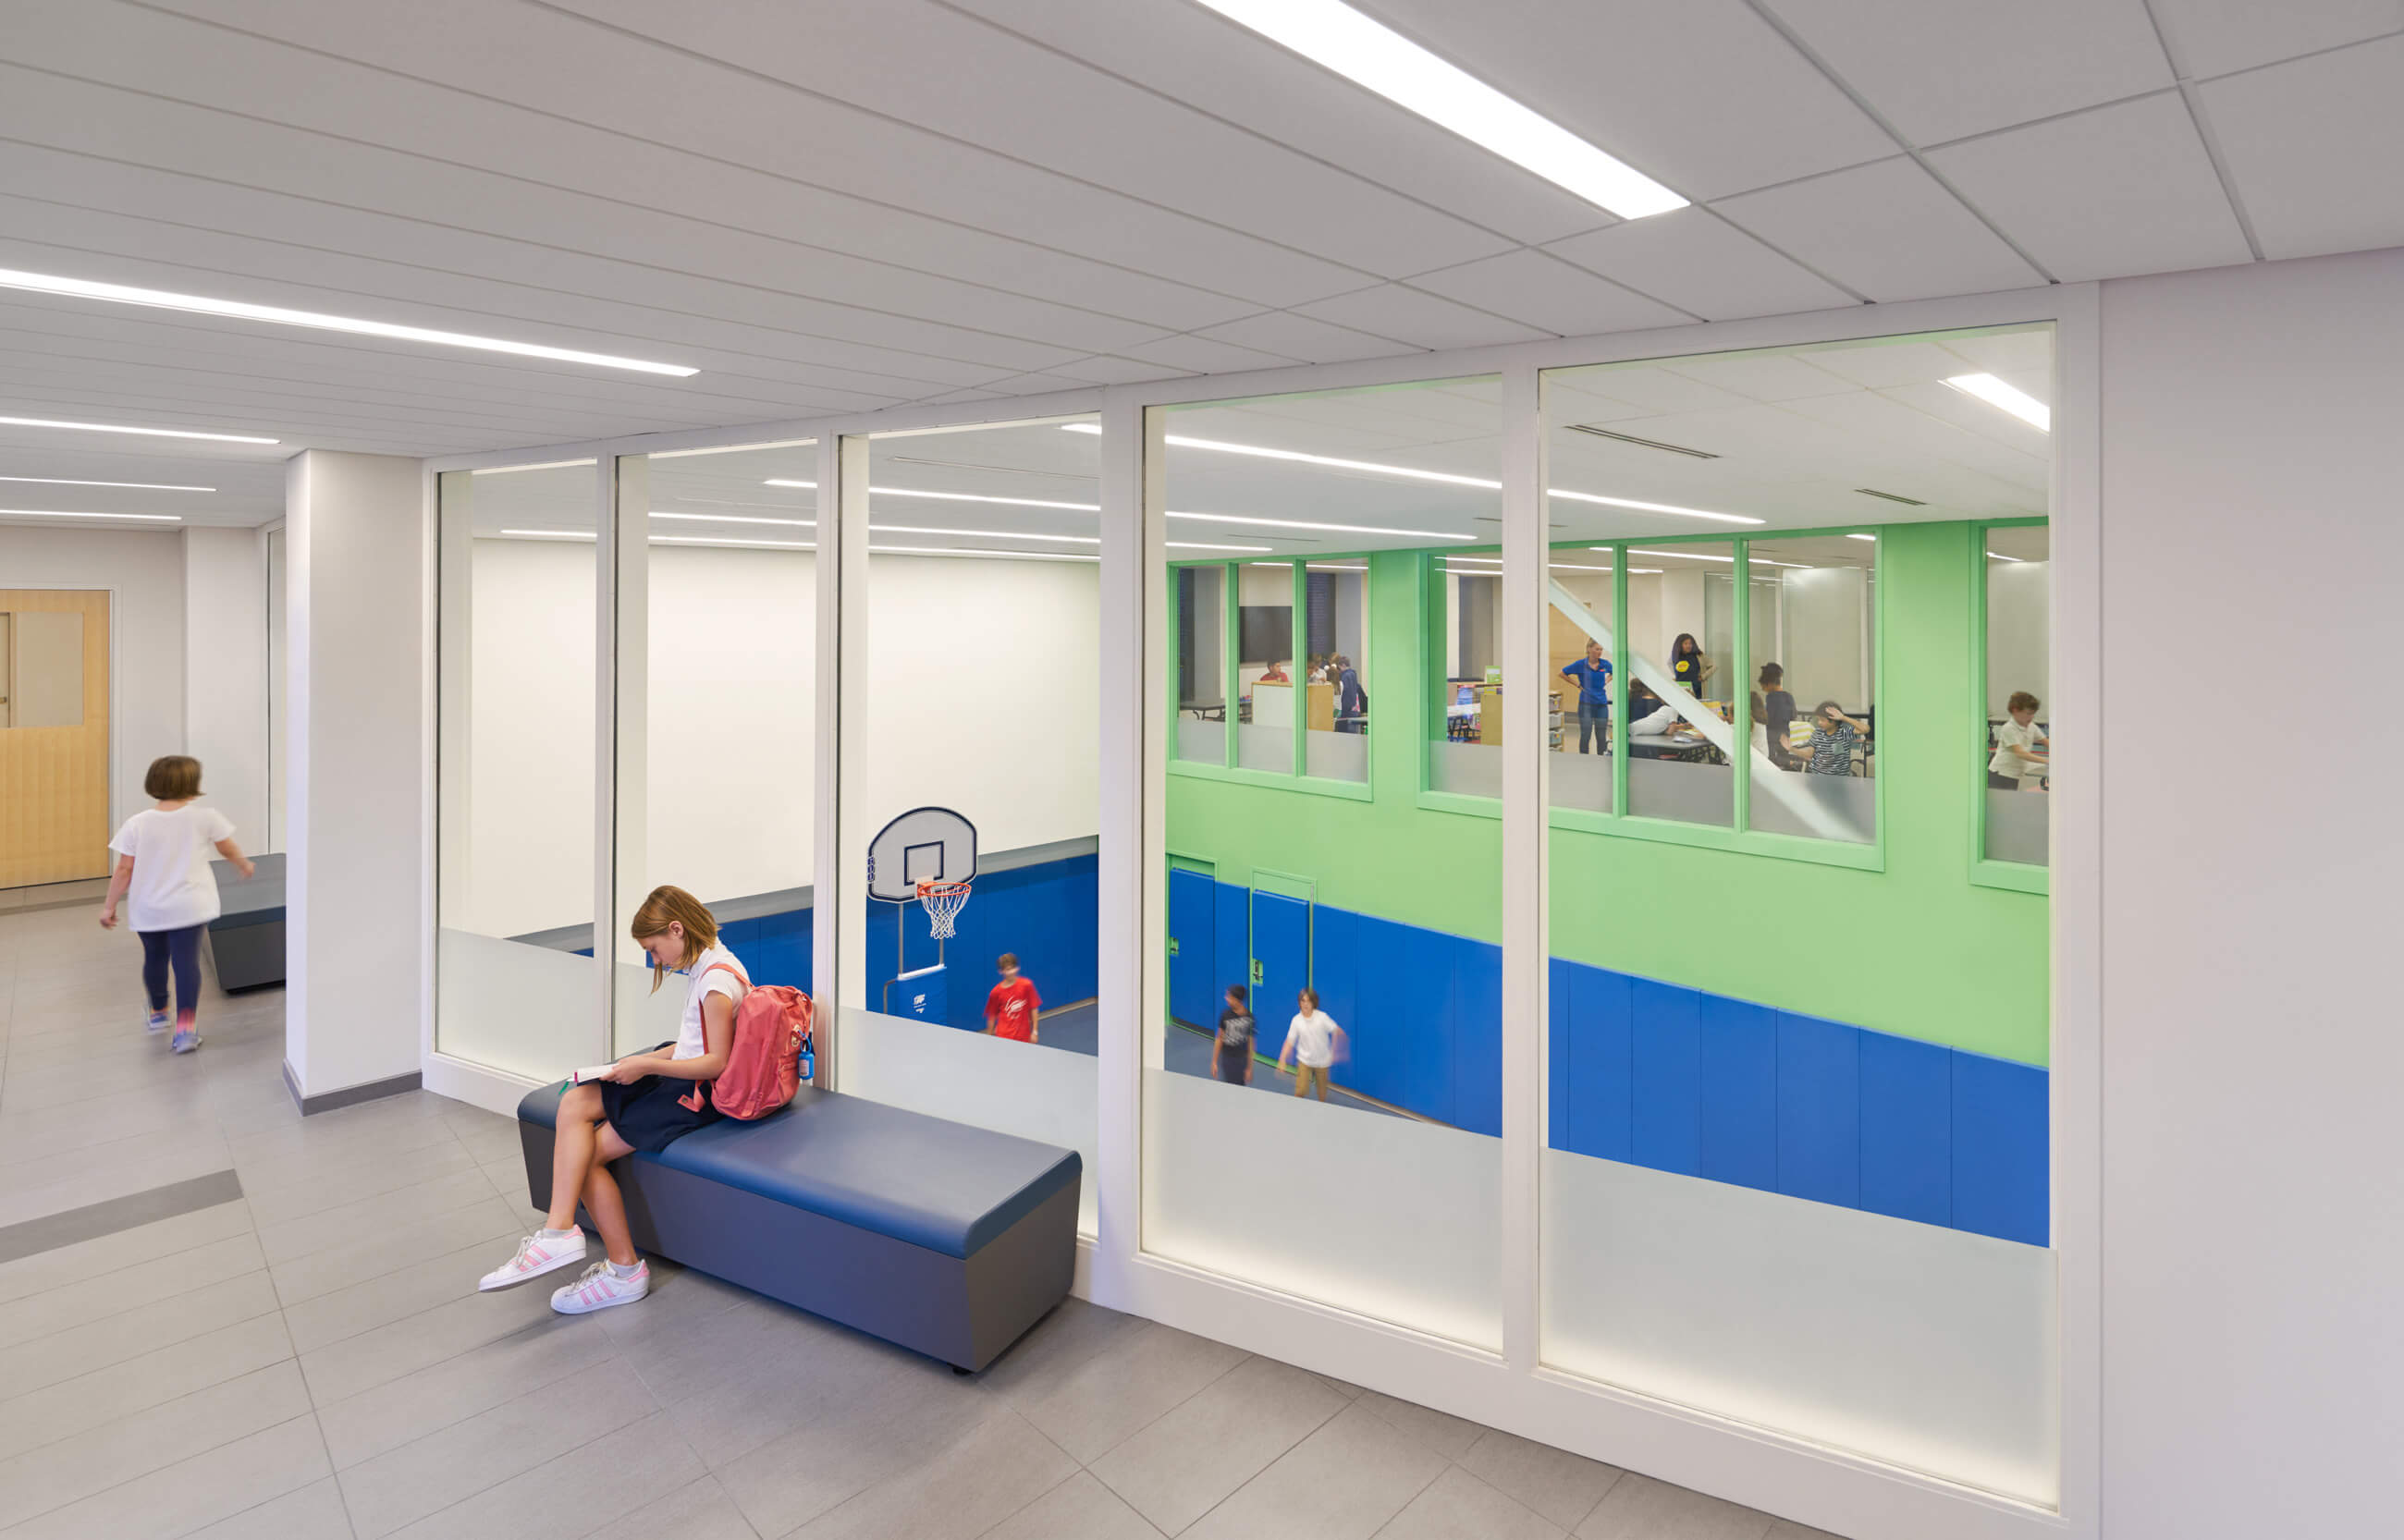 Girl sitting on bench in entry hallway, with windows overlooking the green and blue gym below.